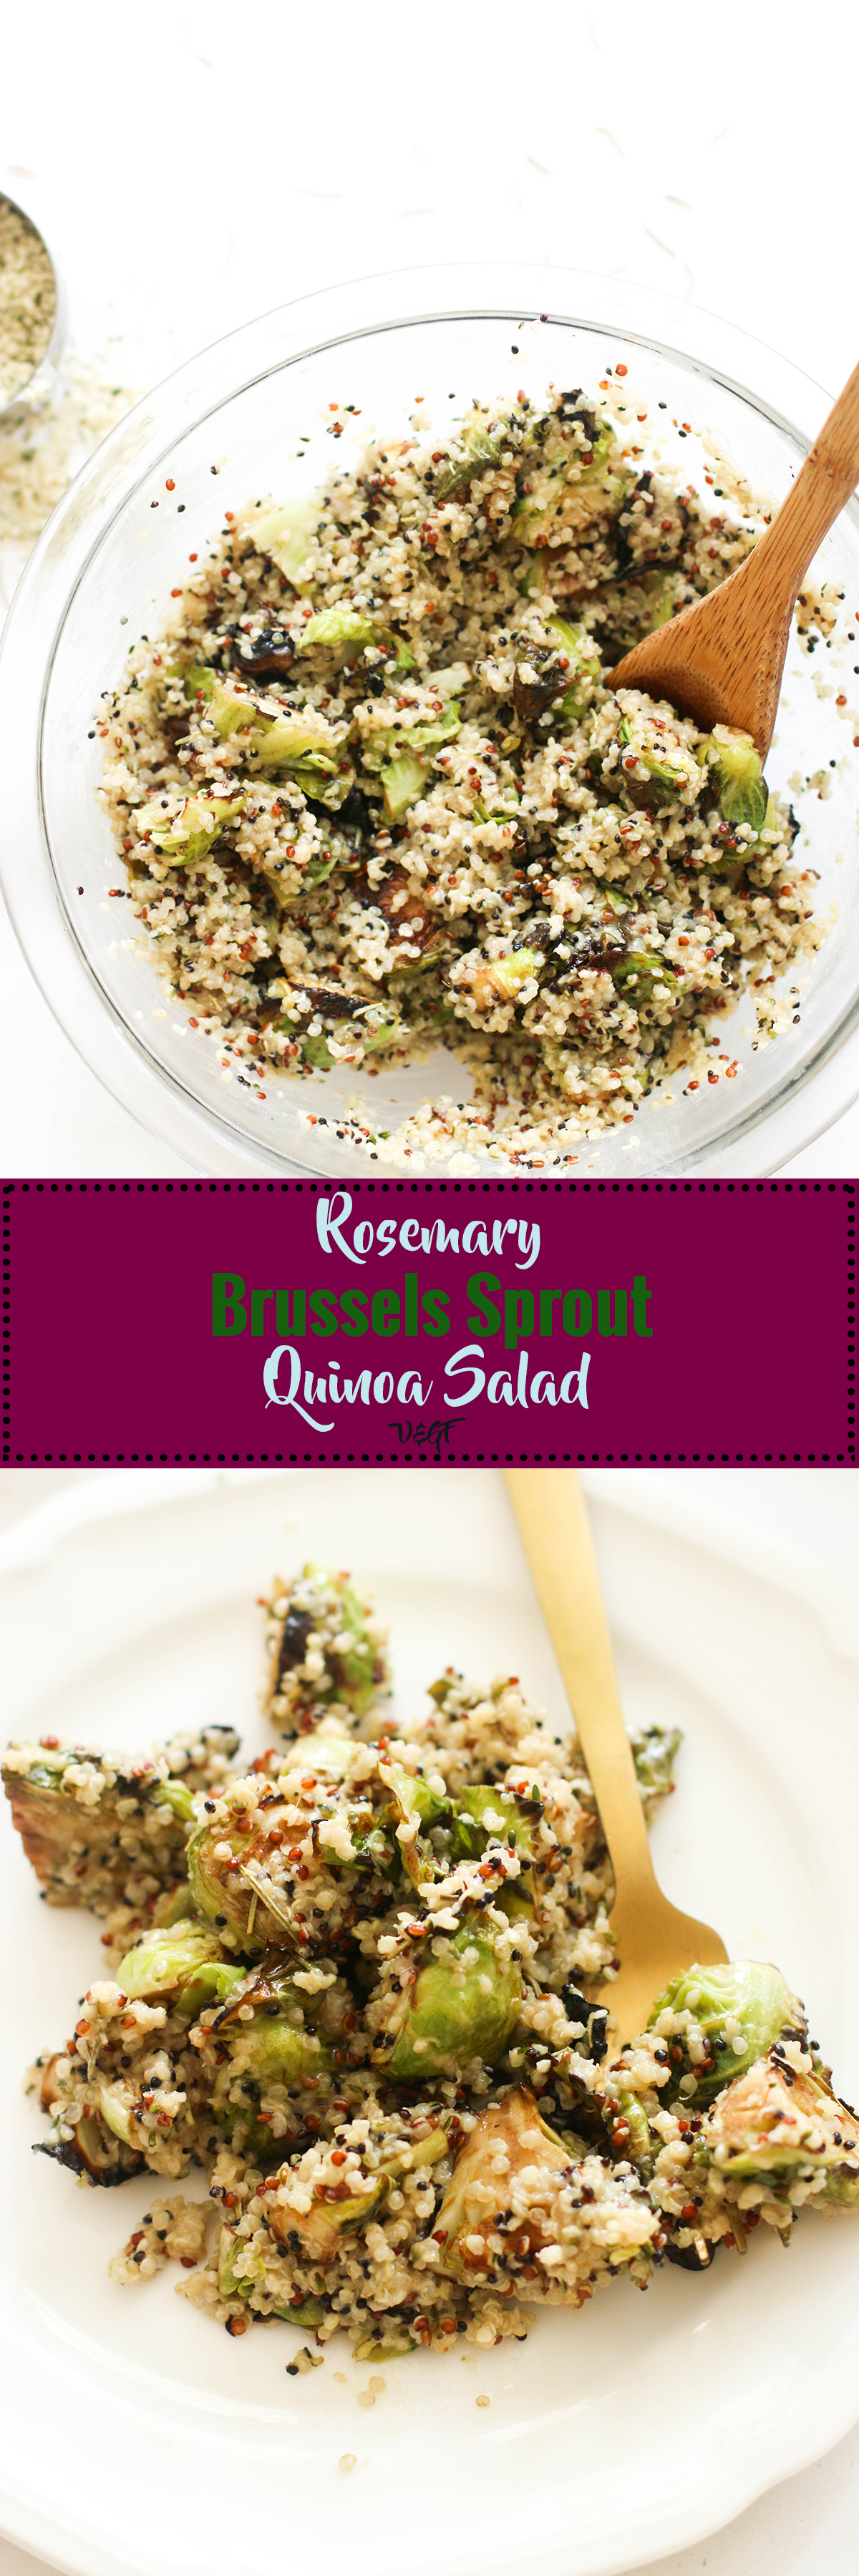 This rosemary brussels sprout quinoa salad is vegan, gluten free,incrediblydelicious, and proteinpacked. It requires minimal ingredients and tons of flavor.